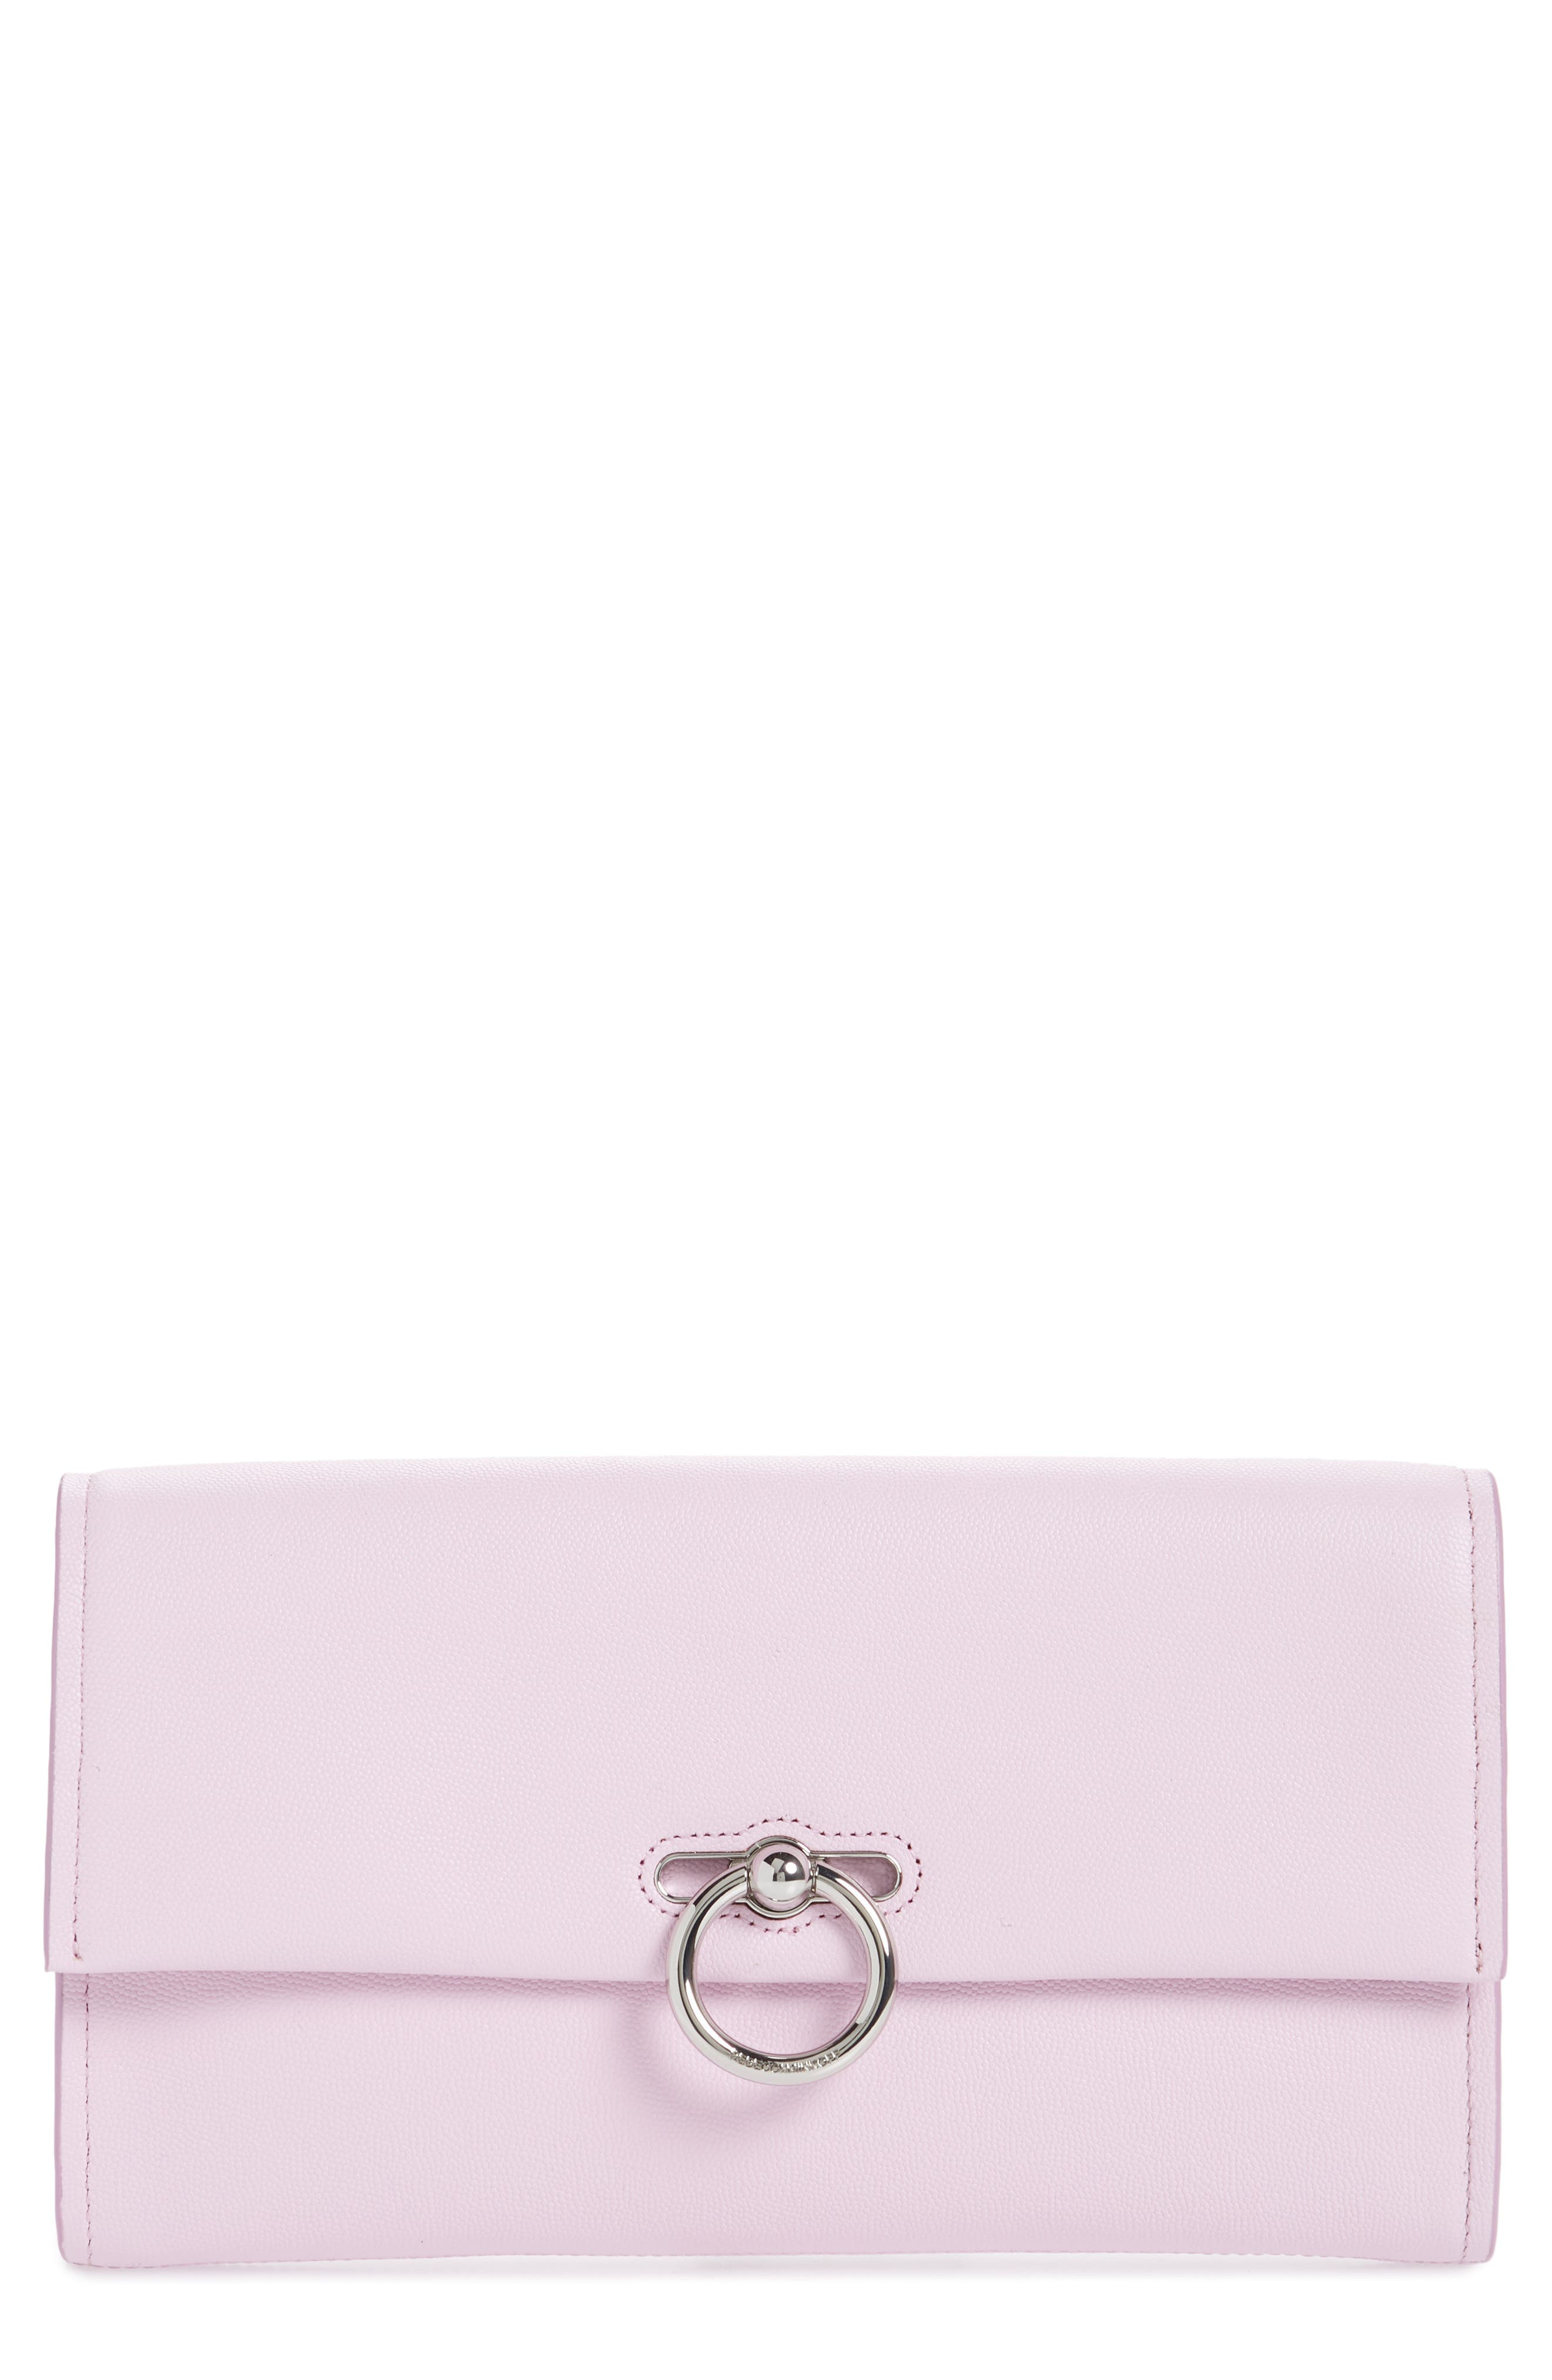 REBECCA MINKOFF Jean Leather Clutch, Main, color, LIGHT ORCHID